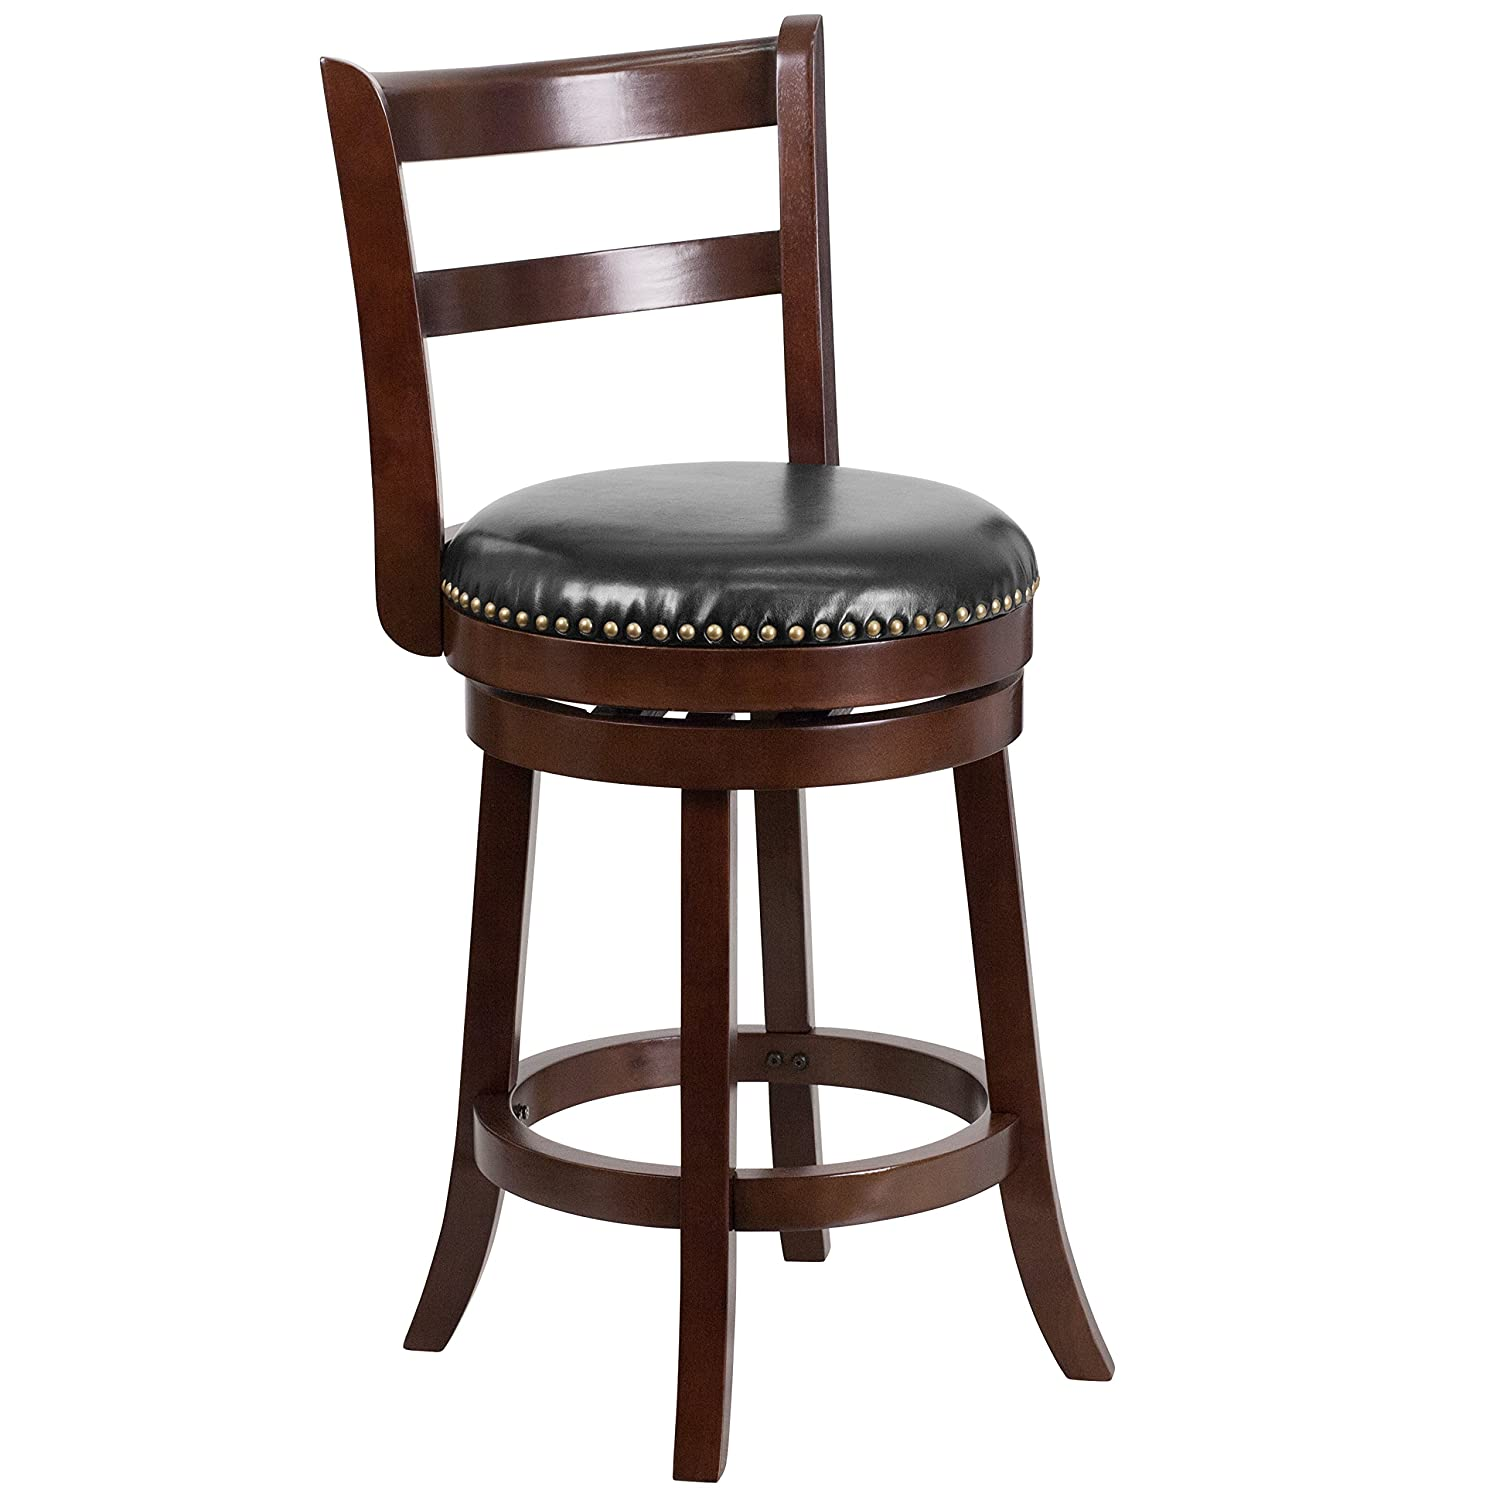 Flash Furniture 26'' High Cappuccino Wood Counter Height Stool with Single Slat Ladder Back and Black Leather Swivel Seat